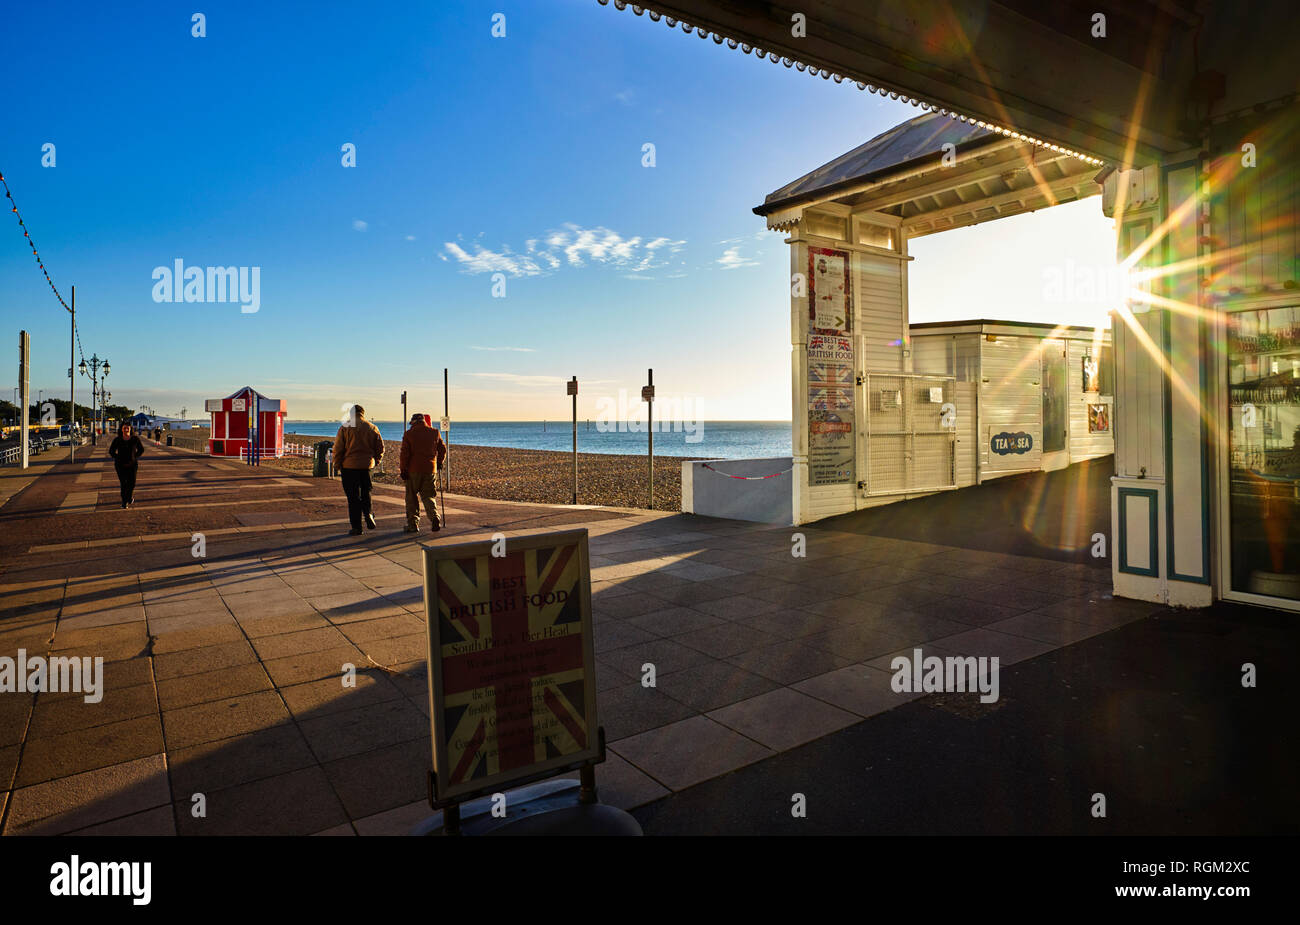 The entrance to Southsea Pier with starburst - Stock Image